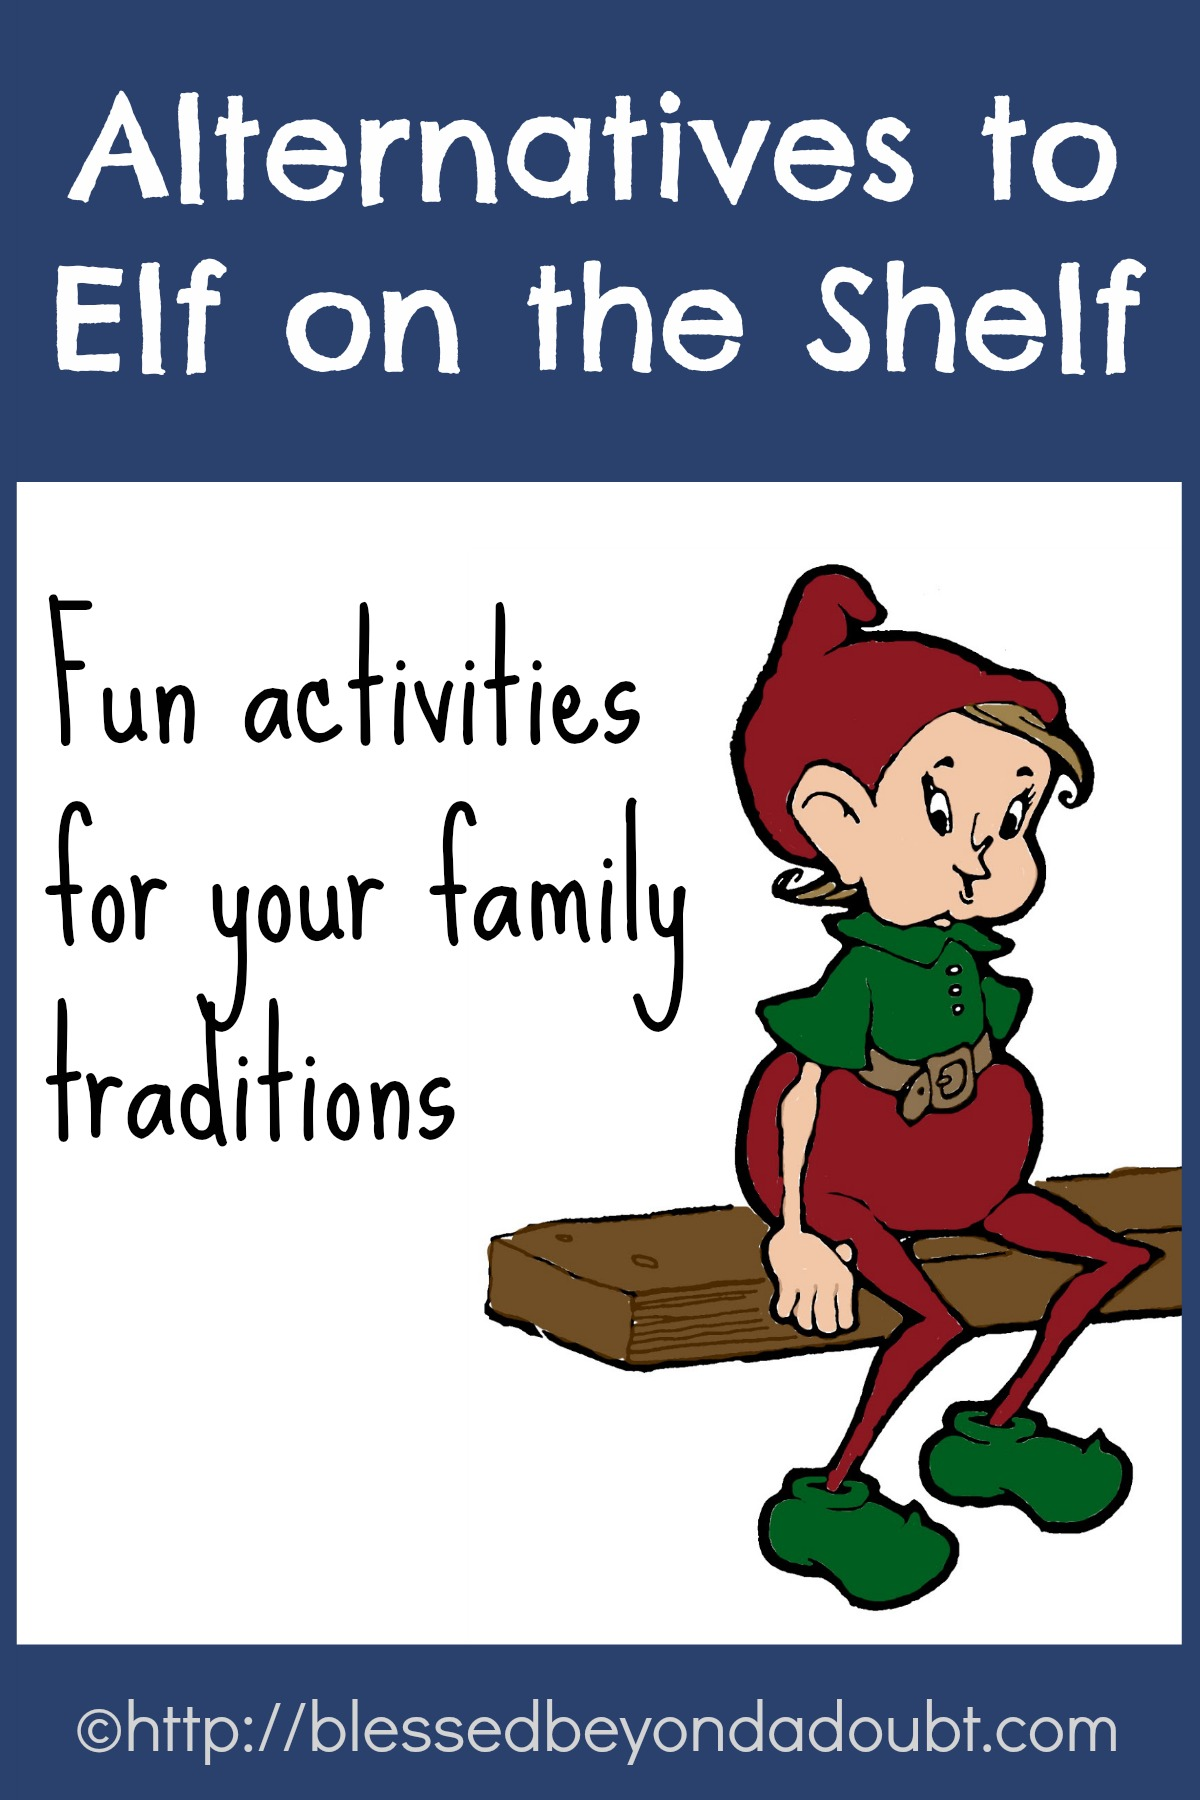 Alternatives to Elf on the Shelf